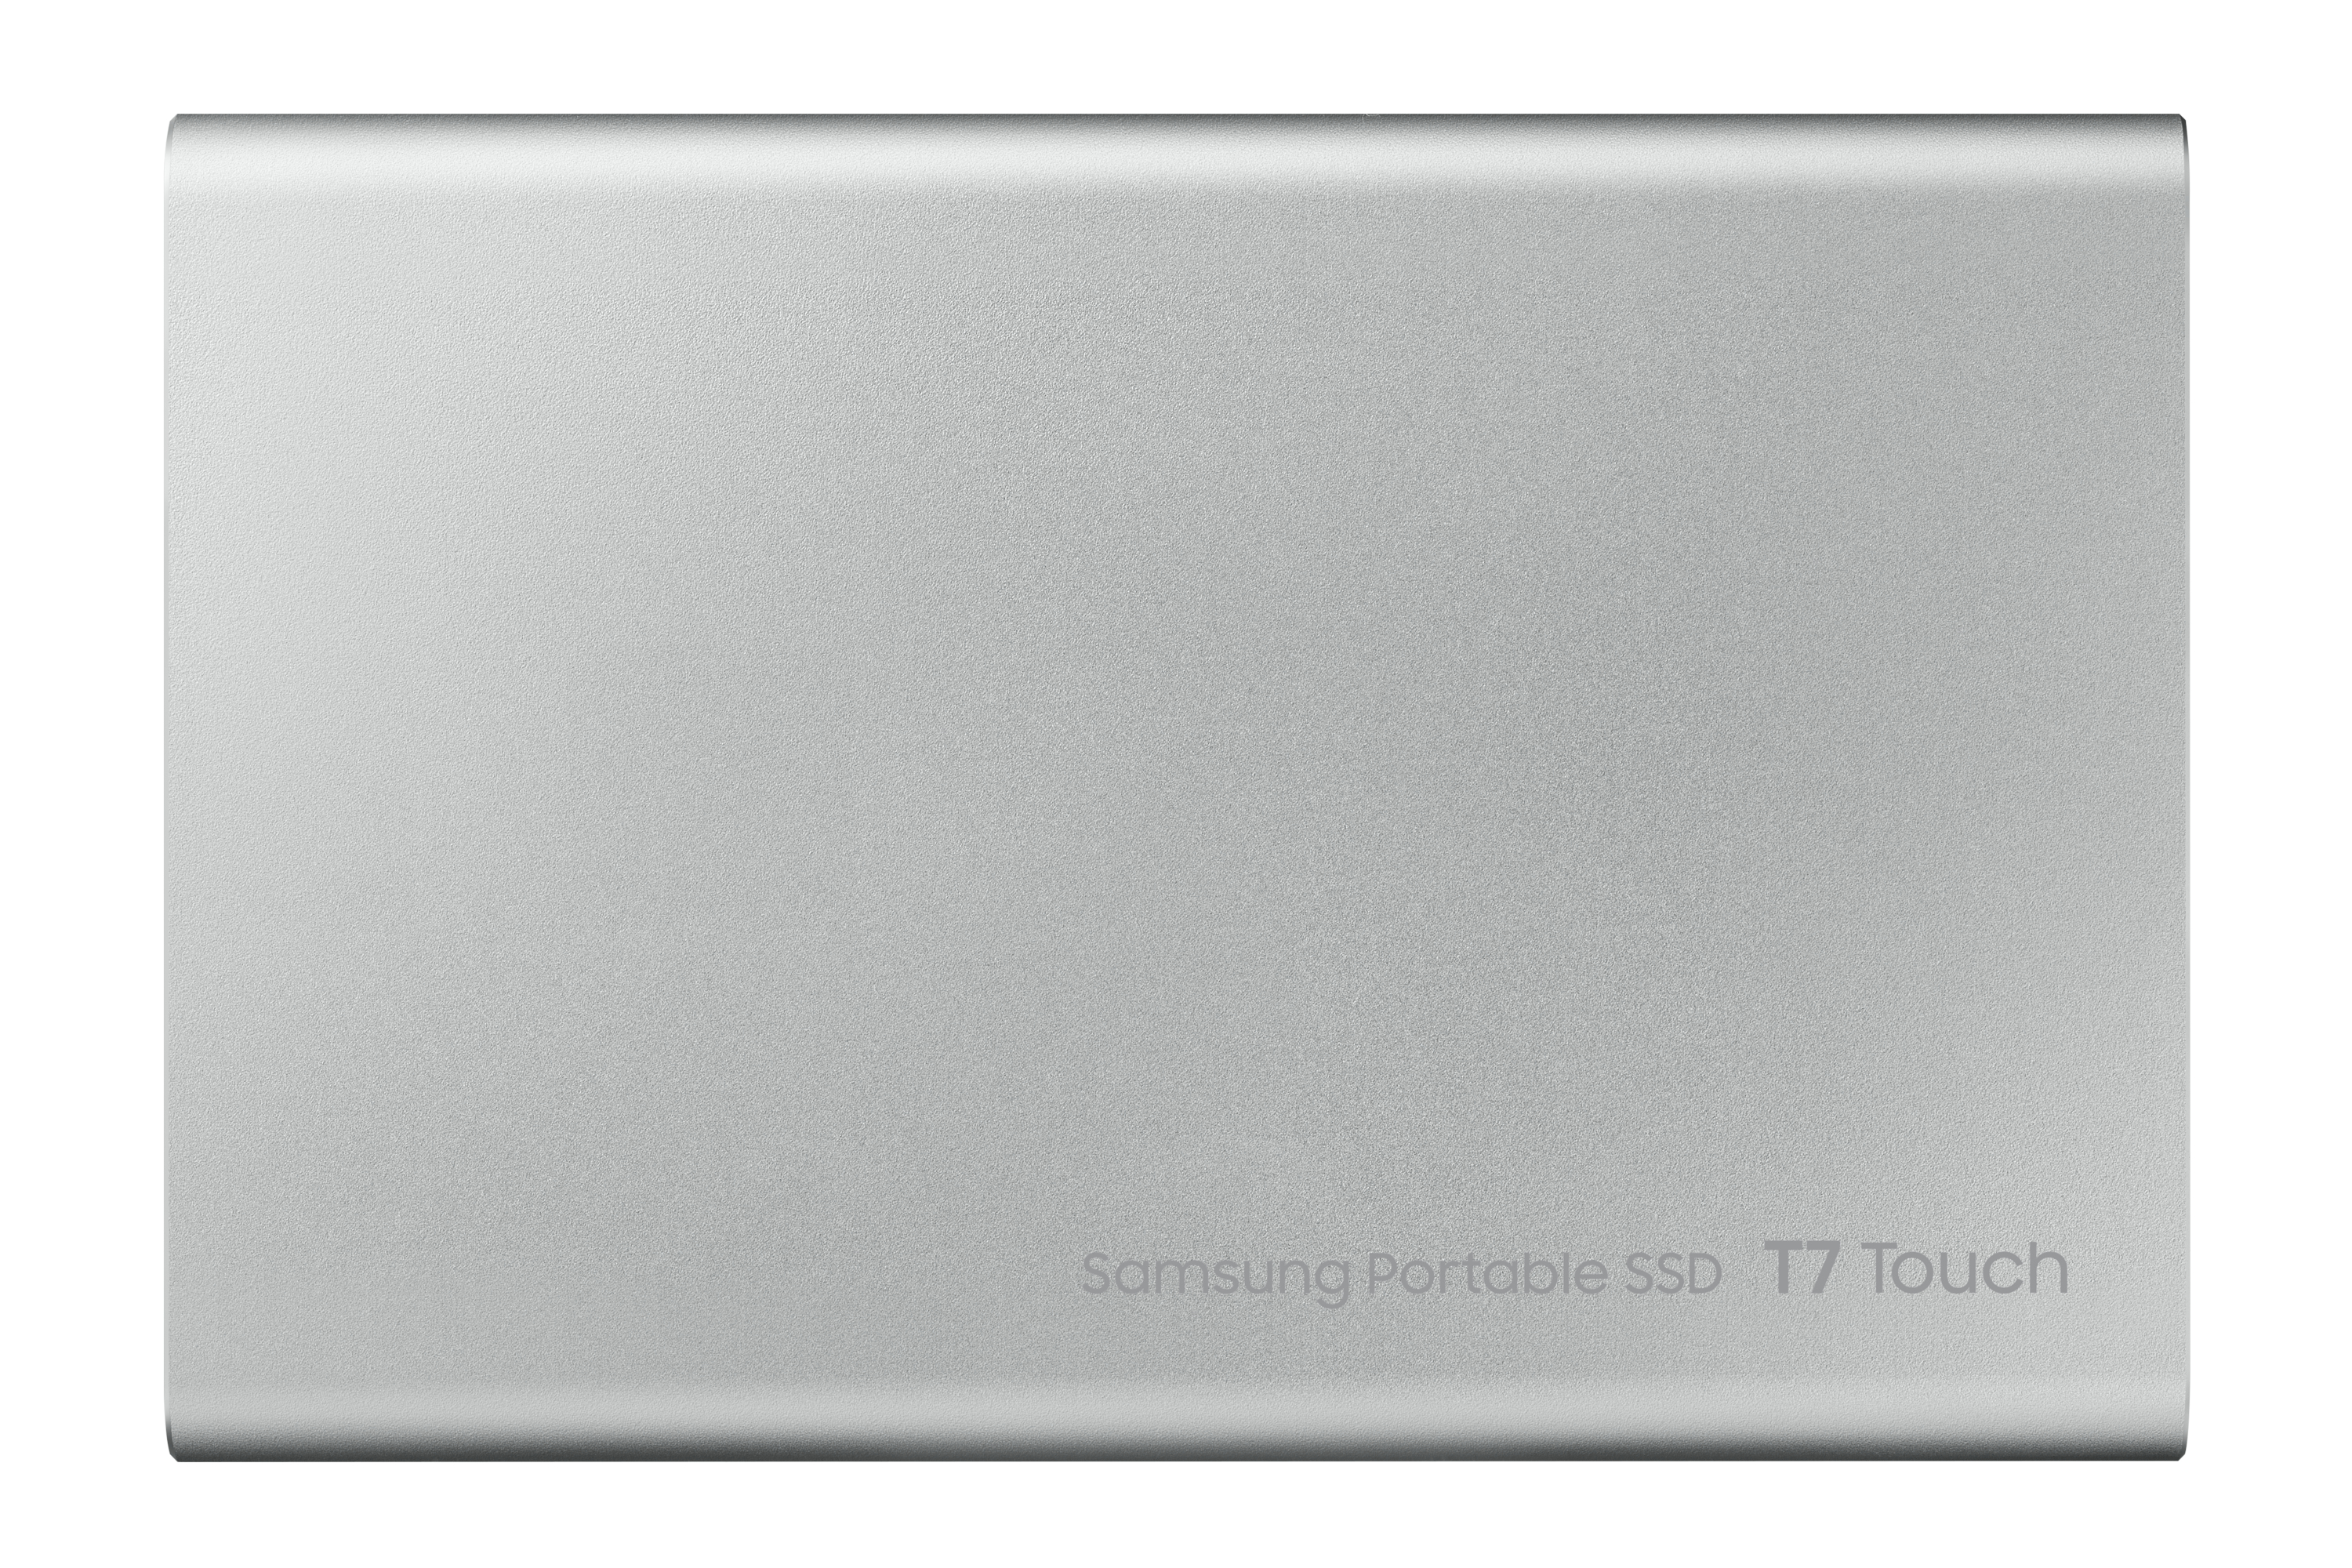 2000 GB MU-PC2T0S Portable SSD (encrypted, USB 3.2 Gen 2, USB-C connector, 256-bit AES, zilver)